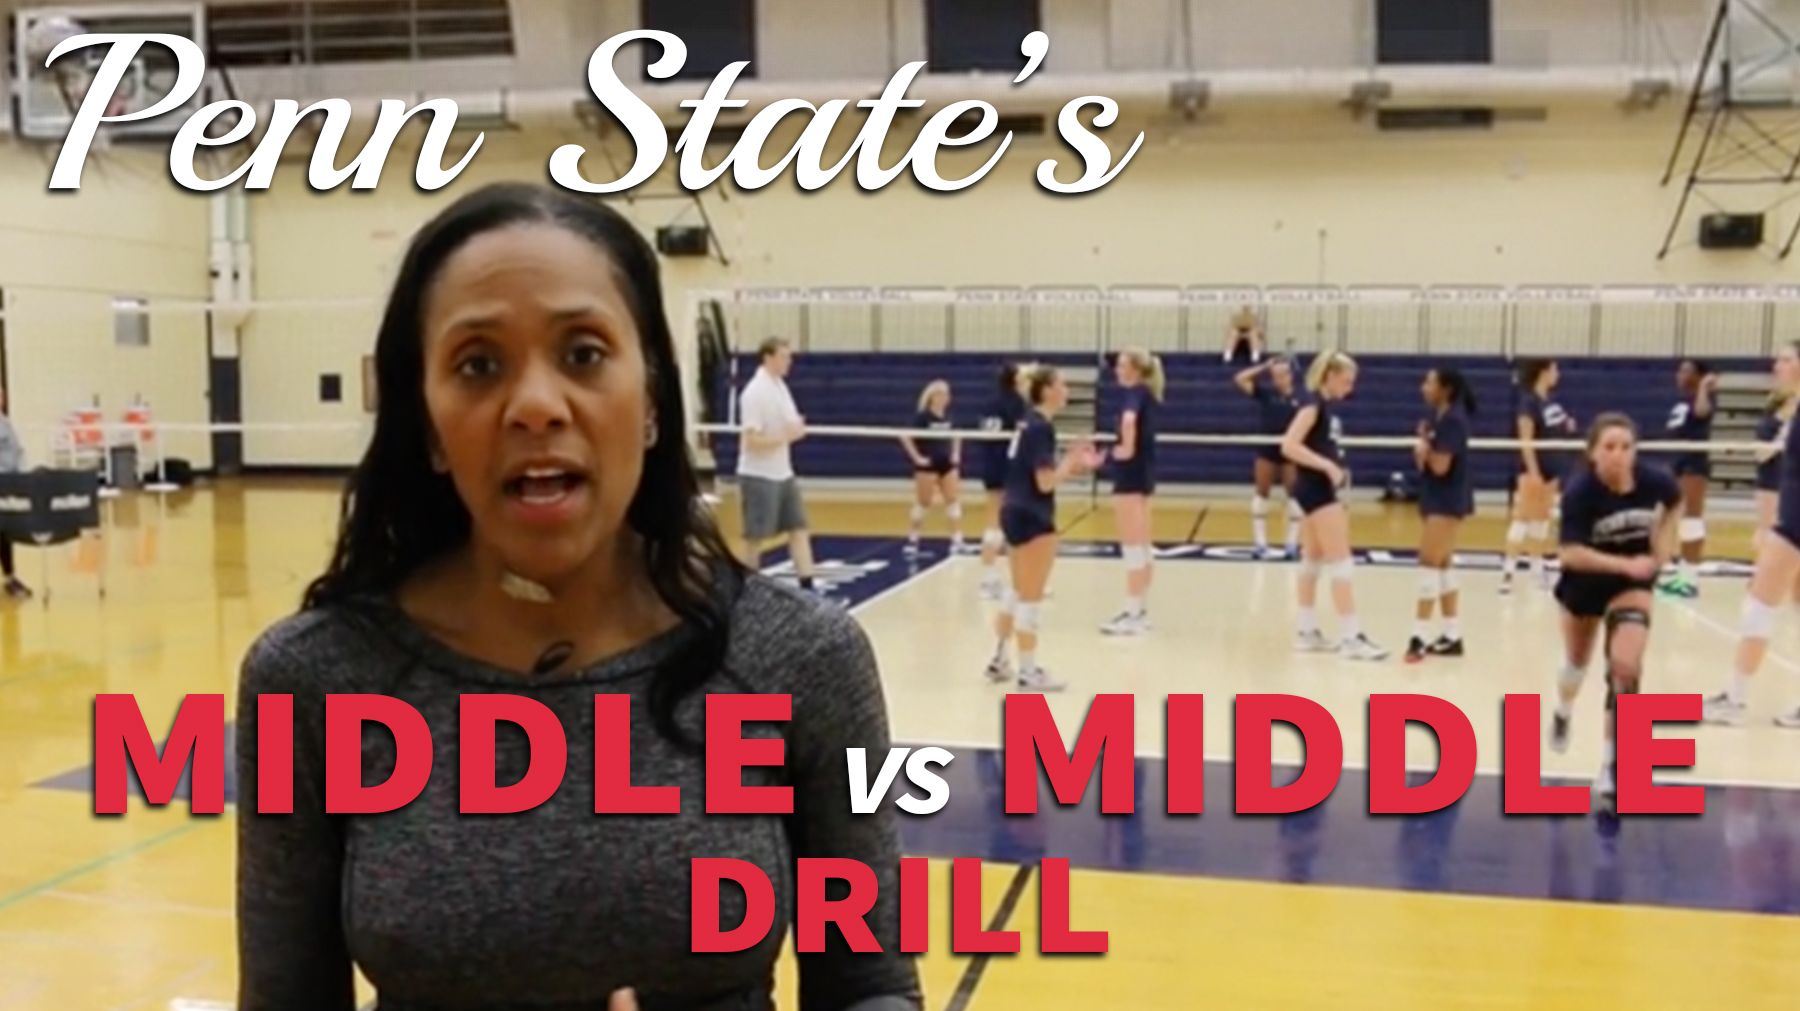 Penn State S Middle Vs Middle Drill The Art Of Coaching Volleyball In 2020 Volleyball Workouts Coaching Volleyball Volleyball Practice